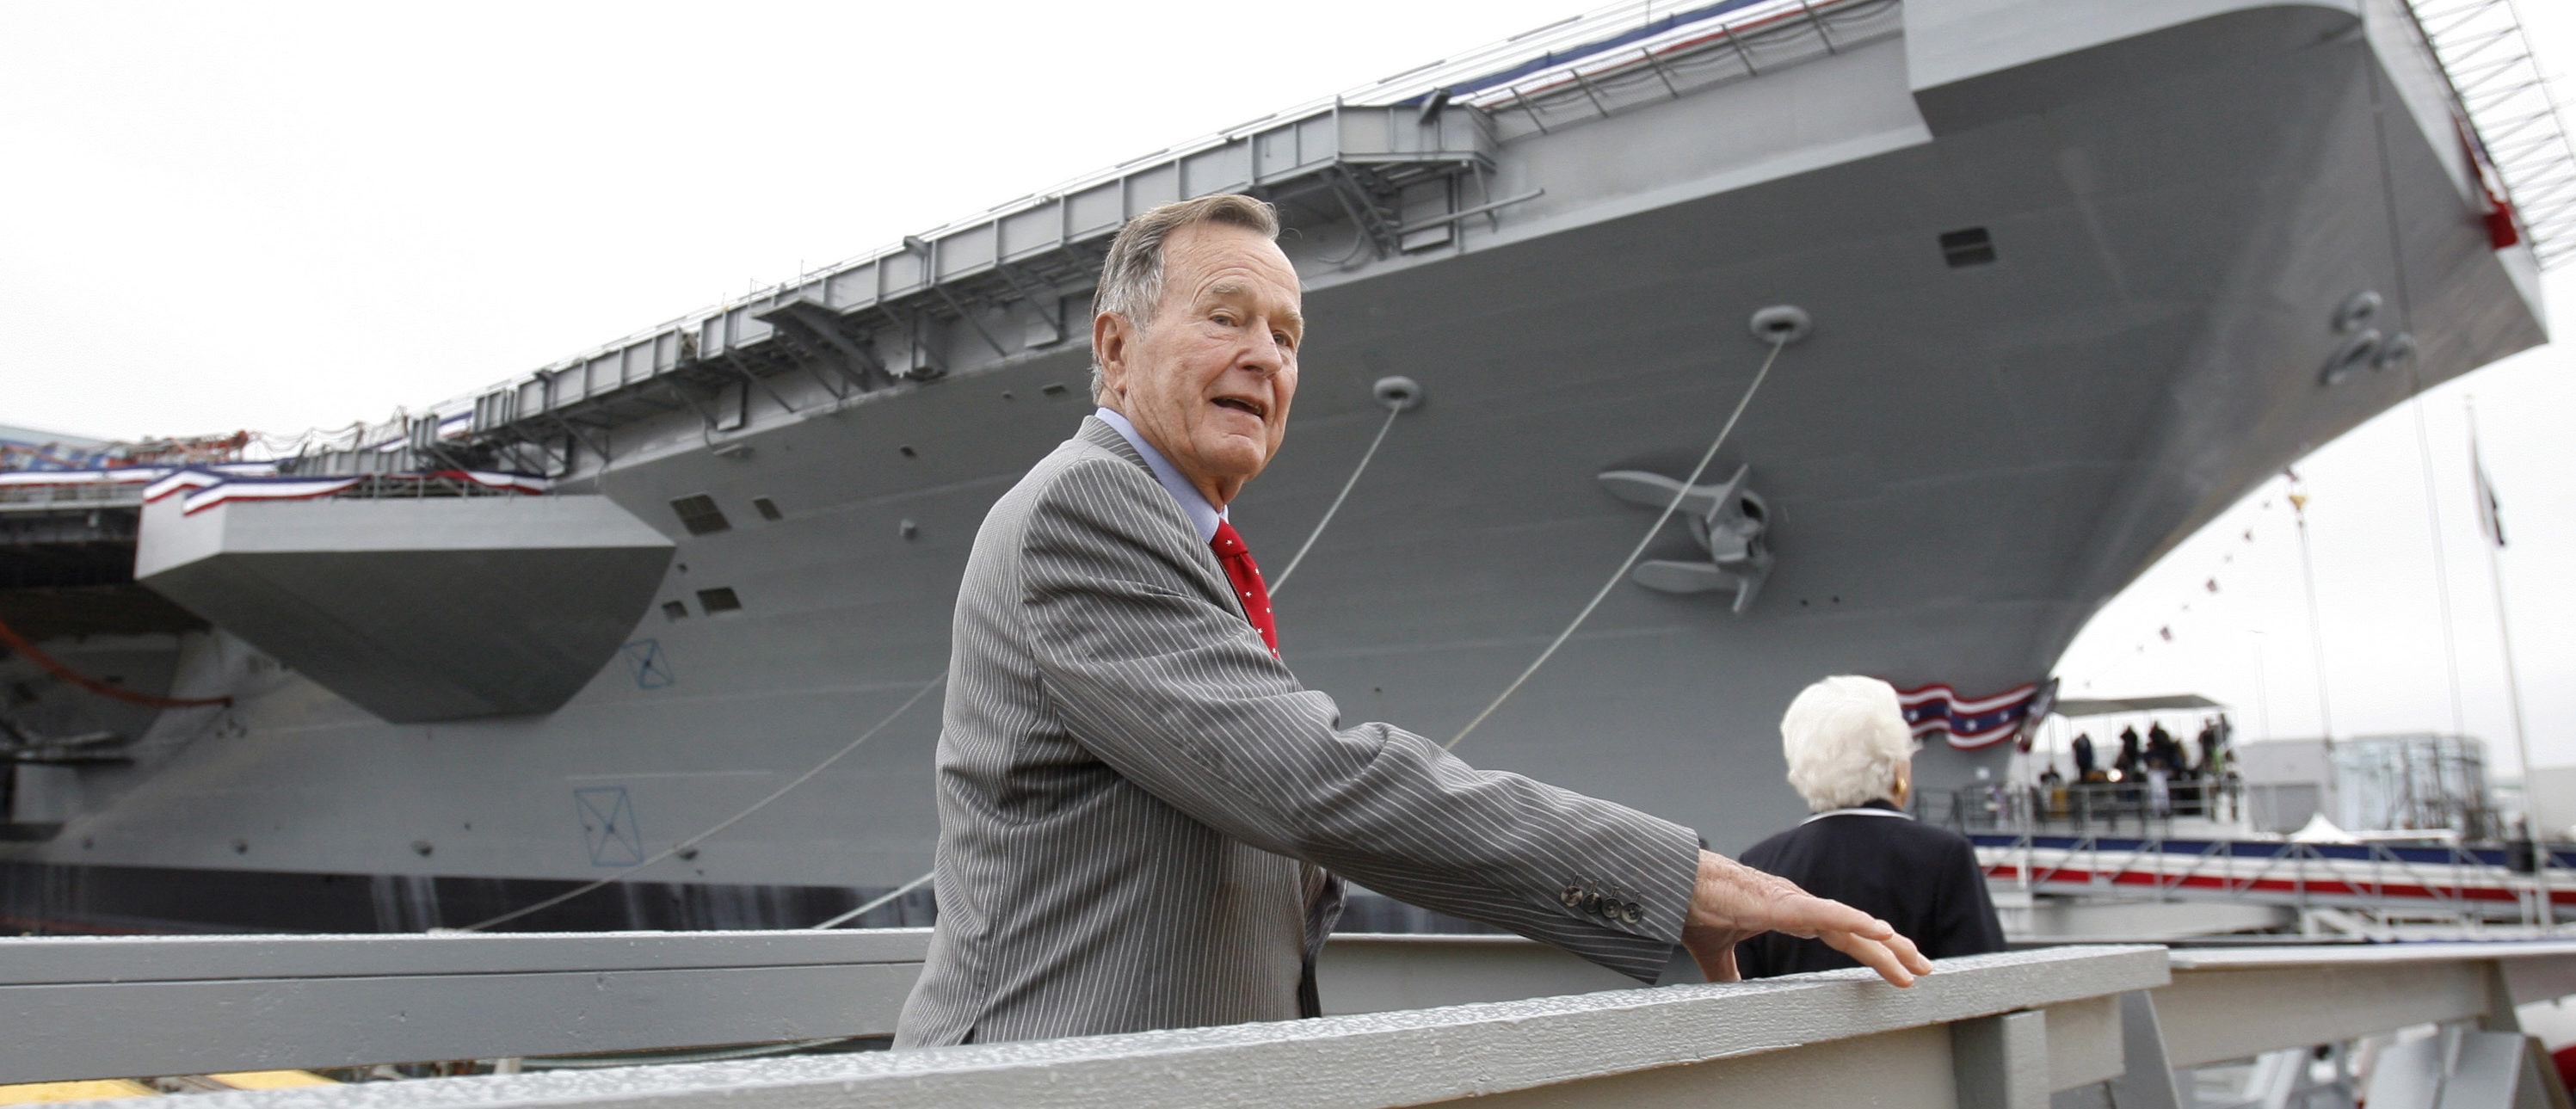 Former president George H. W. Bush walks the gangway as he arrives for the christening ceremony of the USS George H.W. Bush at Northrop-Grumman's shipyard in Newport News, Virginia, October 7, 2006. The Navy's Nimitz-class aircraft carrier is scheduled to enter service in late 2008. REUTERS/Kevin Lamarque